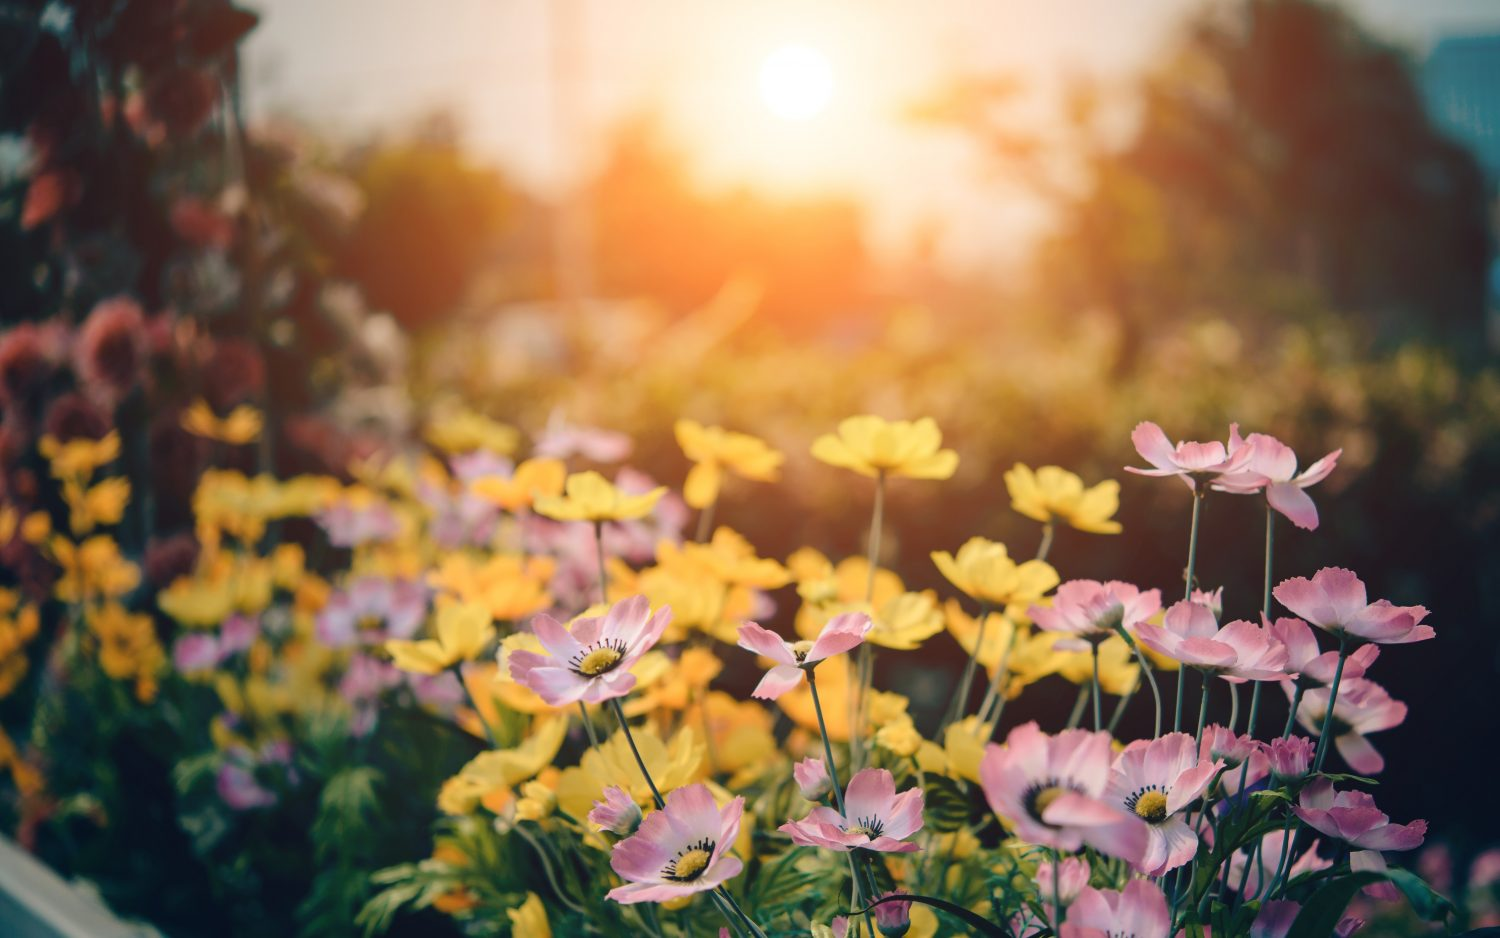 Use flowers to sell your home | Flowers in the sunset